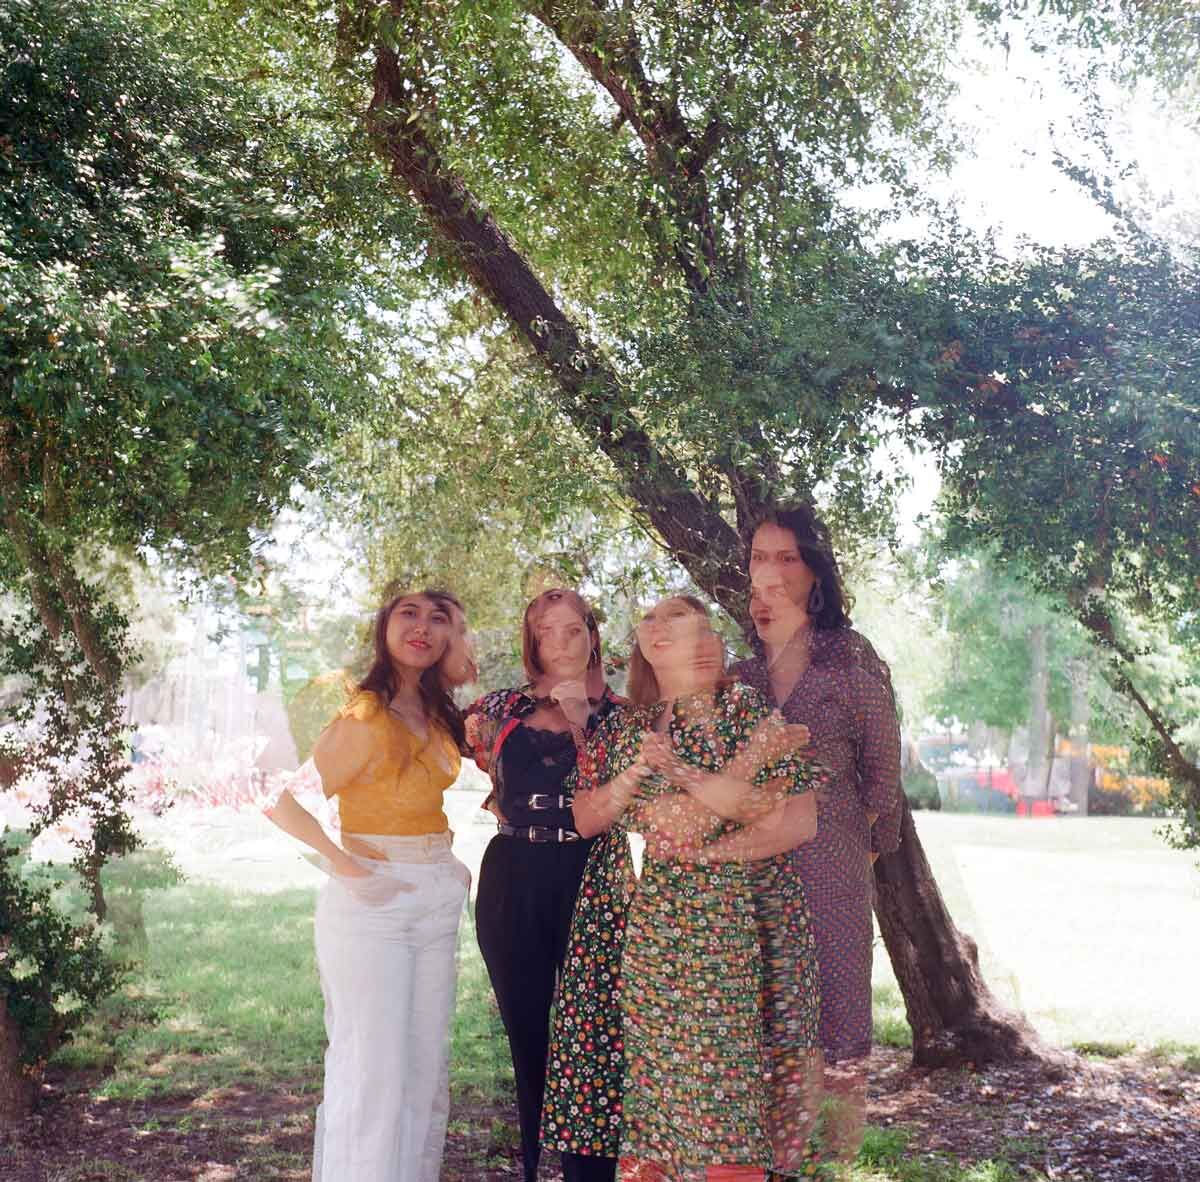 four women standing in the middle bottom of the image in front of a tree leaning diagonally from the bottom right corner to the top left. the image is slightly out of focus giving the impression of multiple images gauzily overlaid on top of each other.